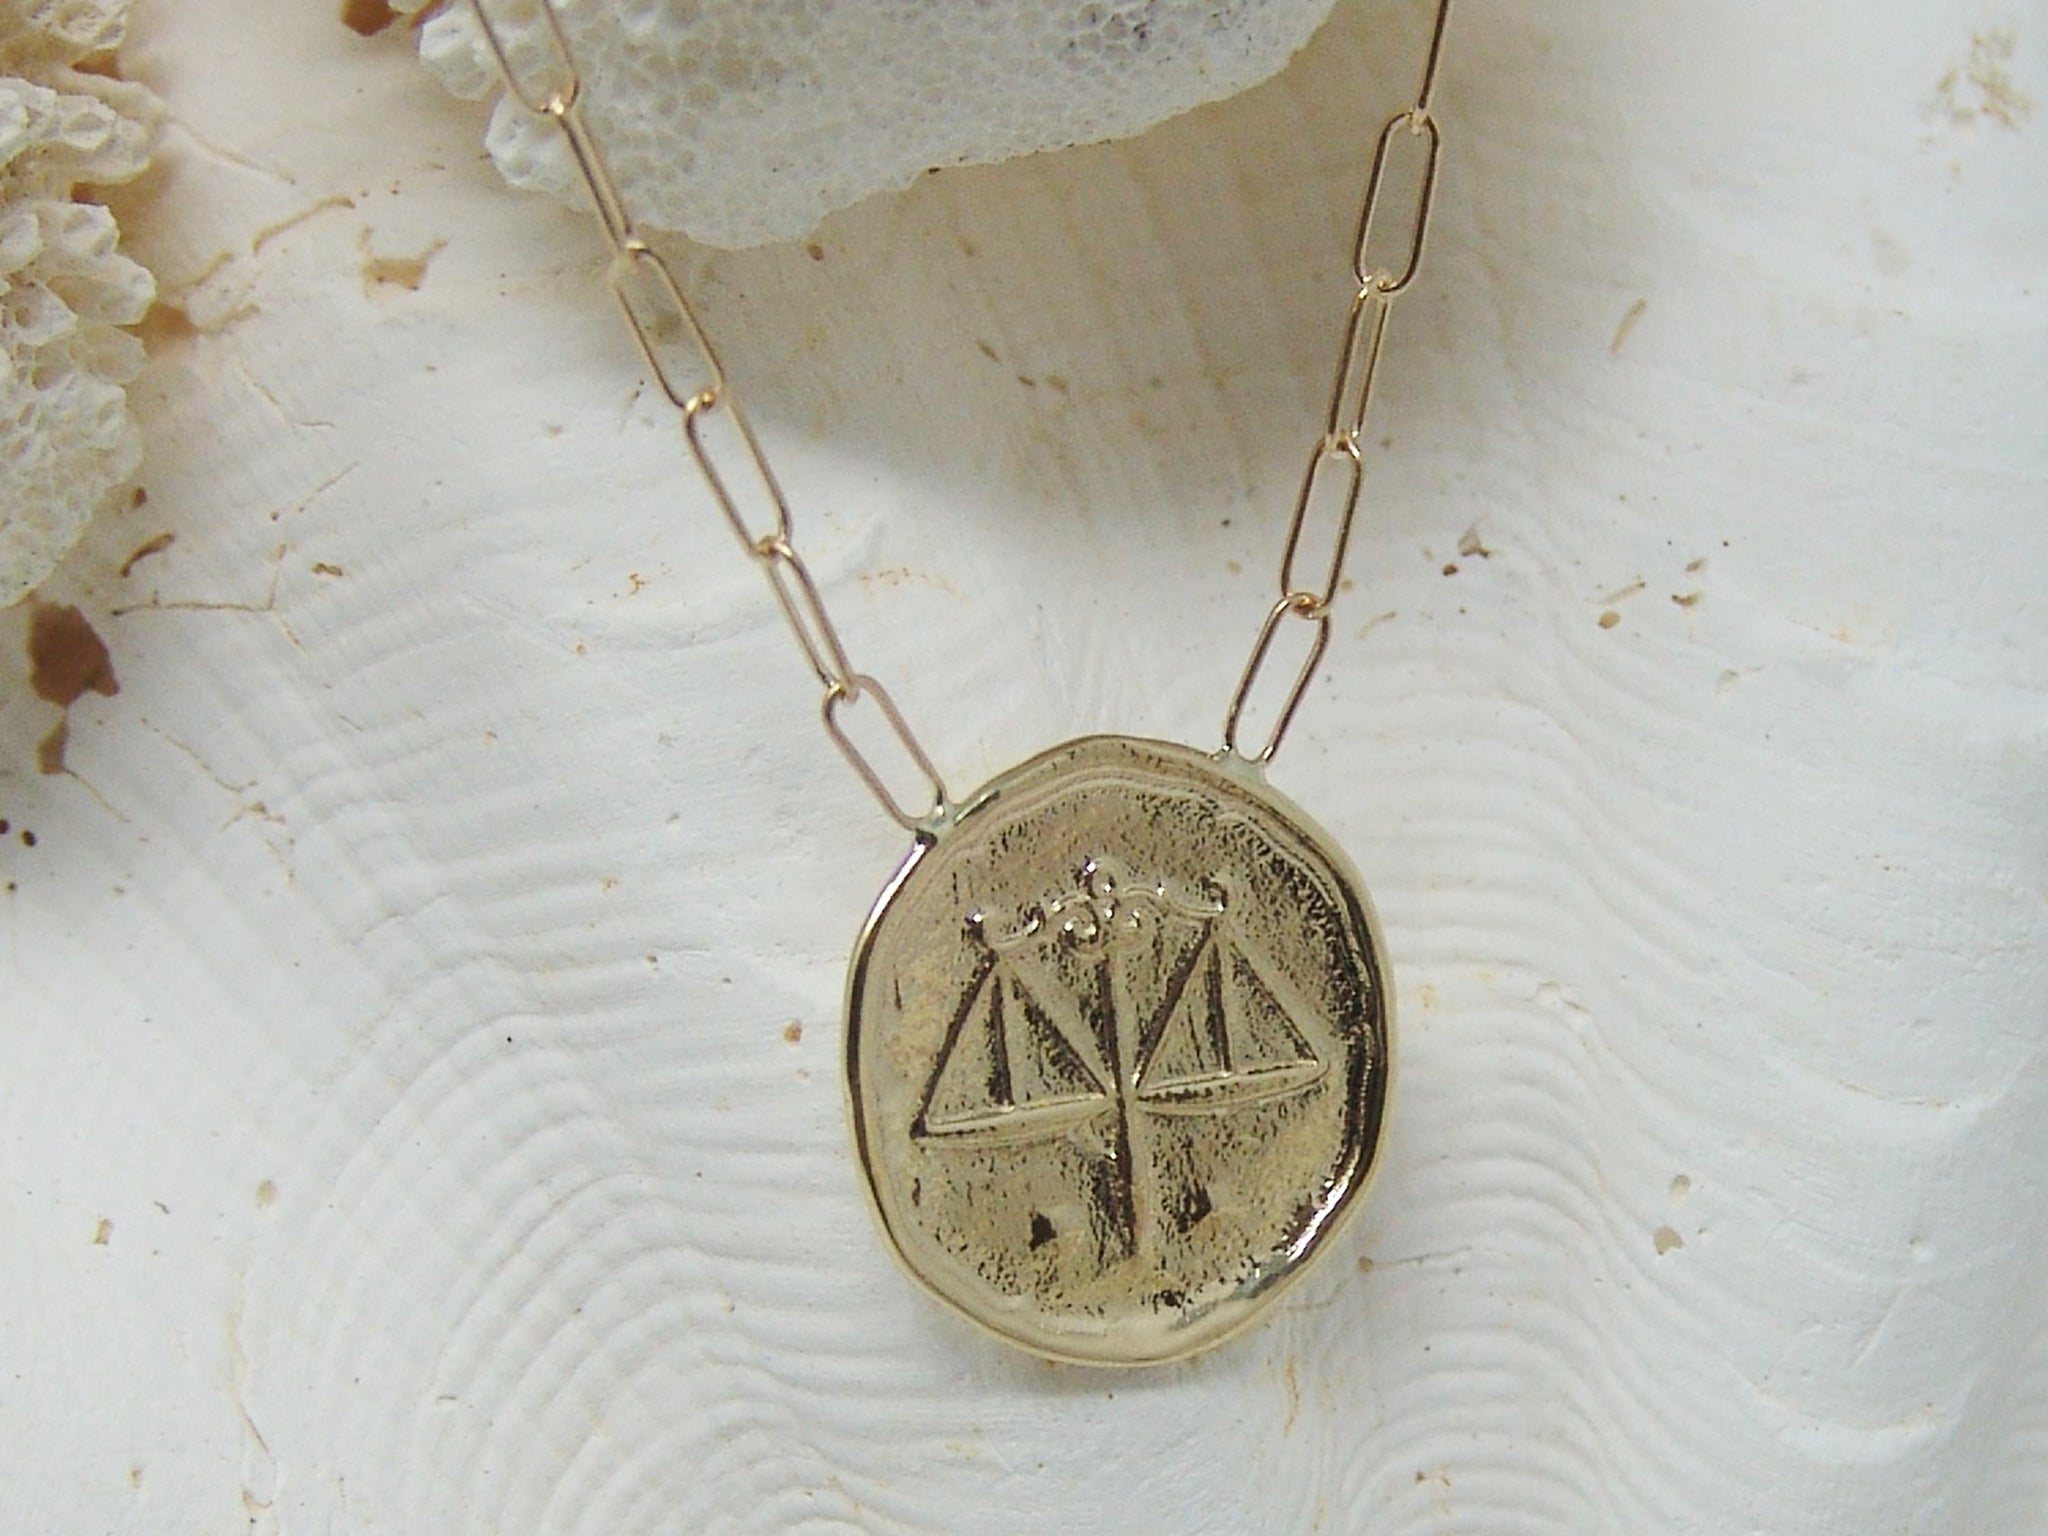 Libra (Scales) Astrology Necklace